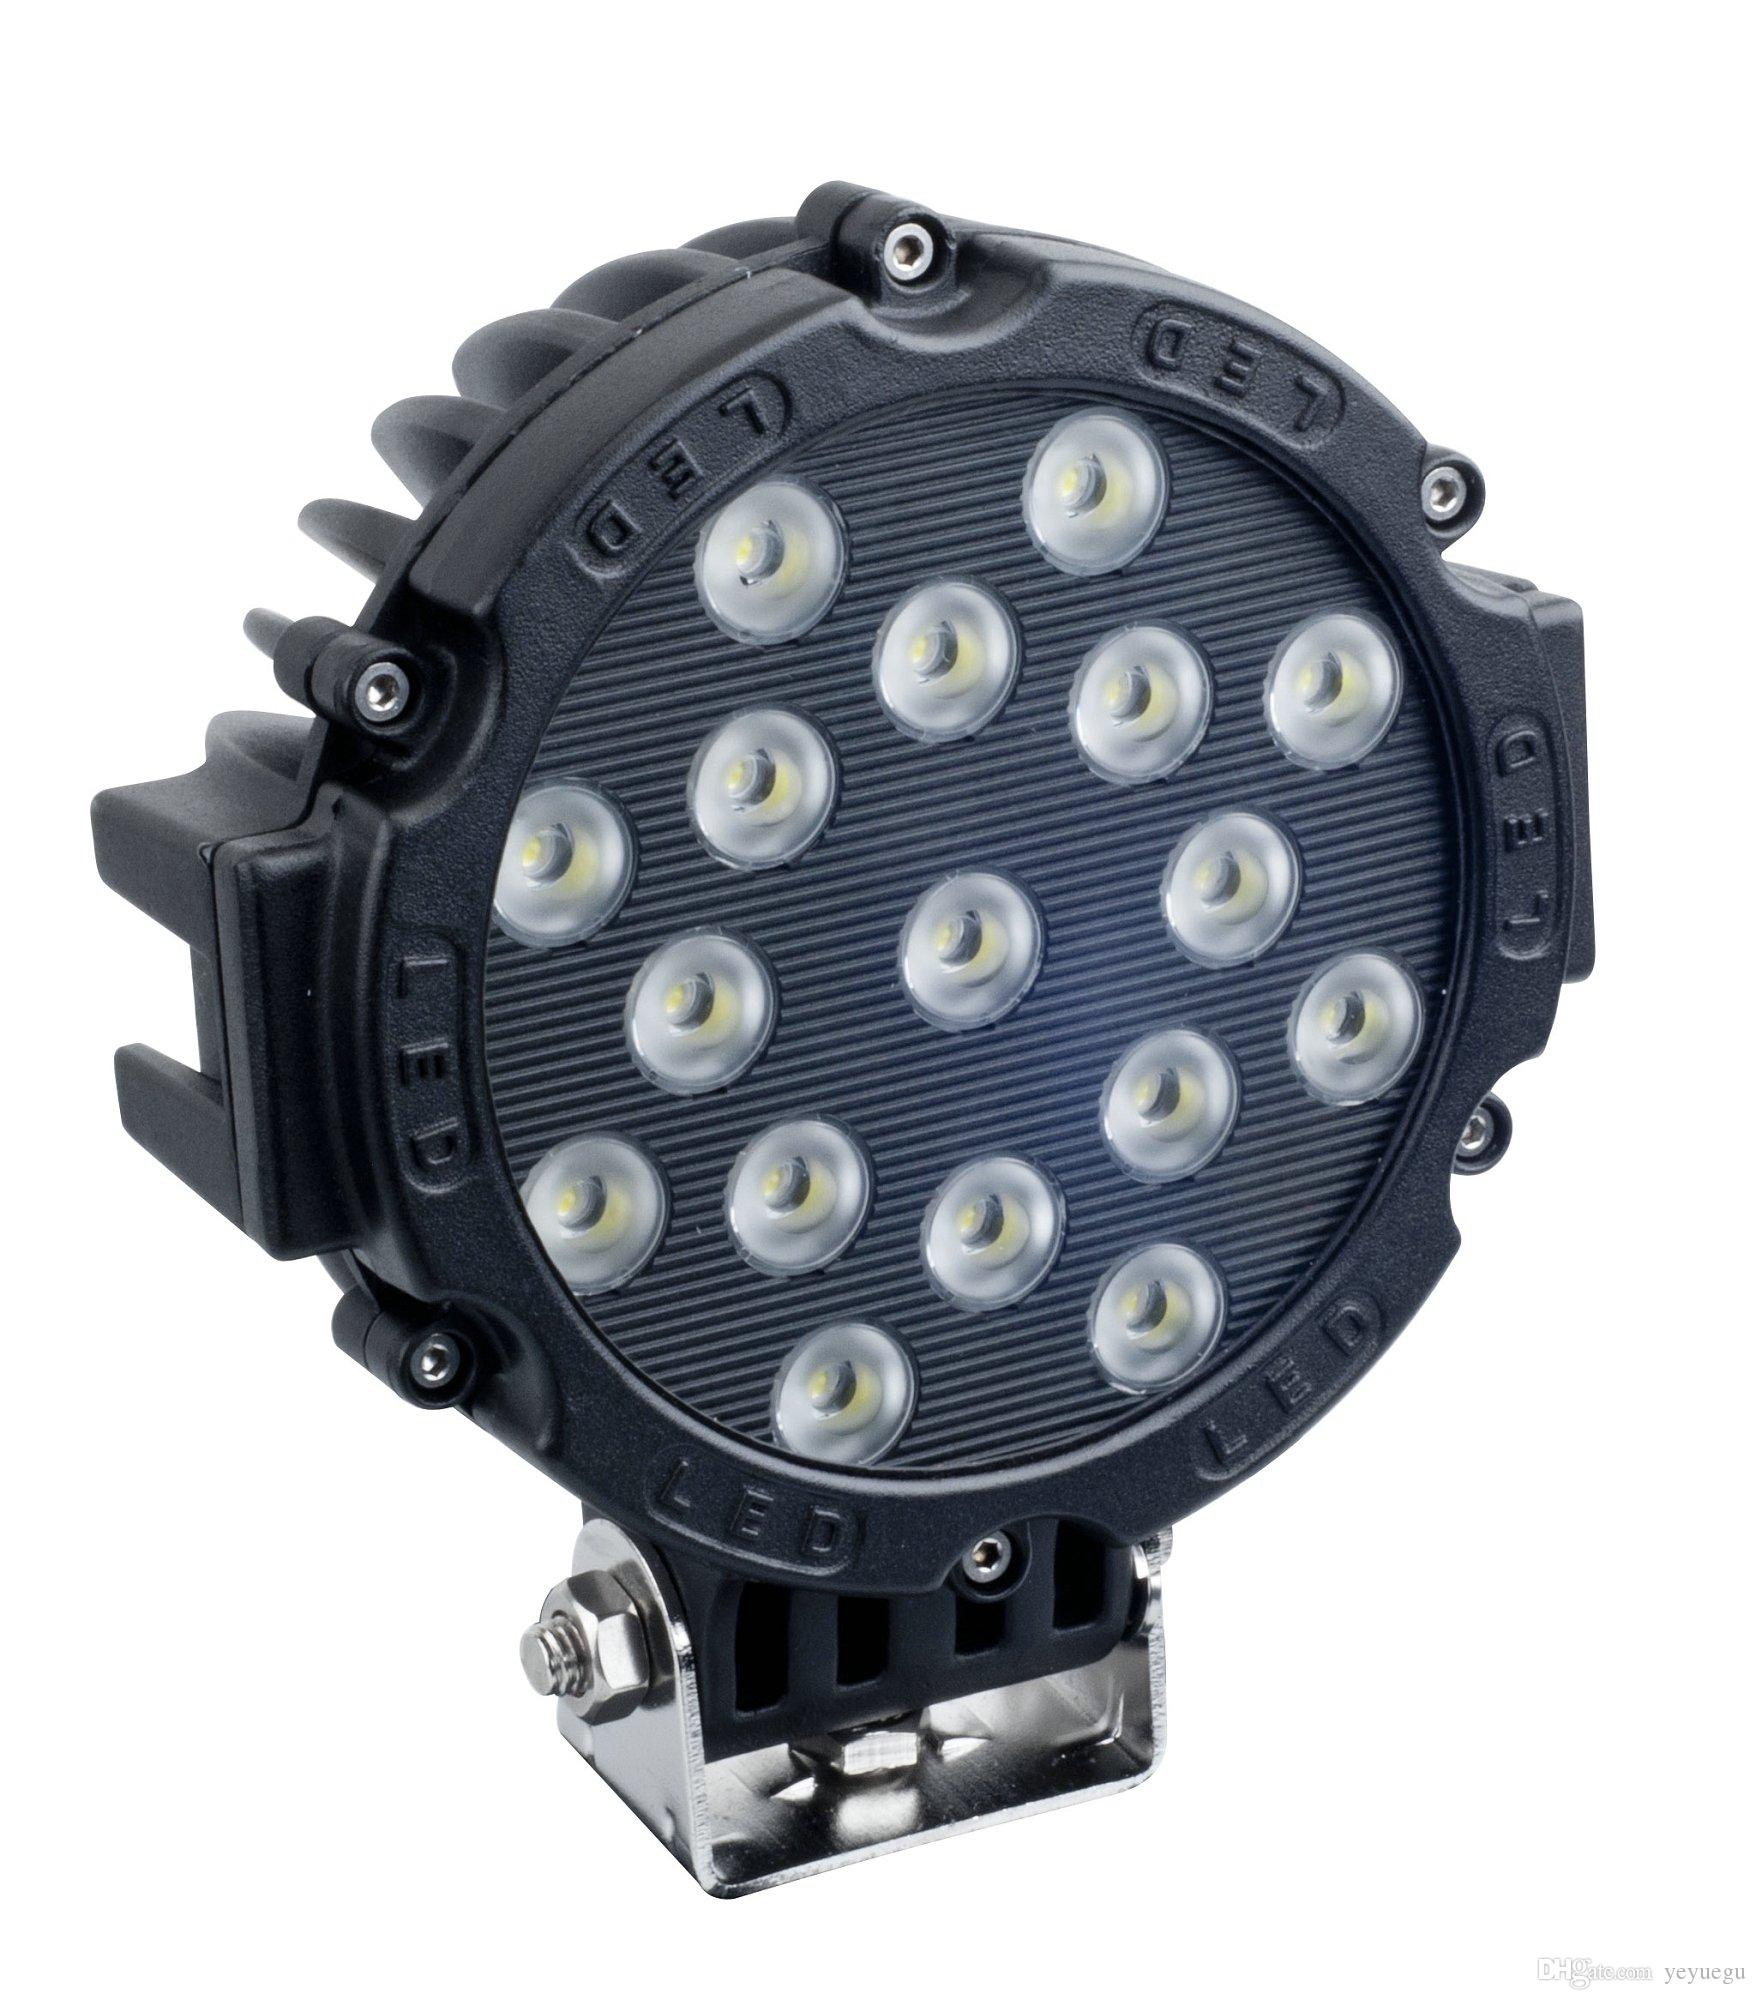 7Inch 51W Car Round LED Work Light 12V High Power 17 X 3W Spot Light For 4x4 Offroad Truck Tractor ATV SUV Driving